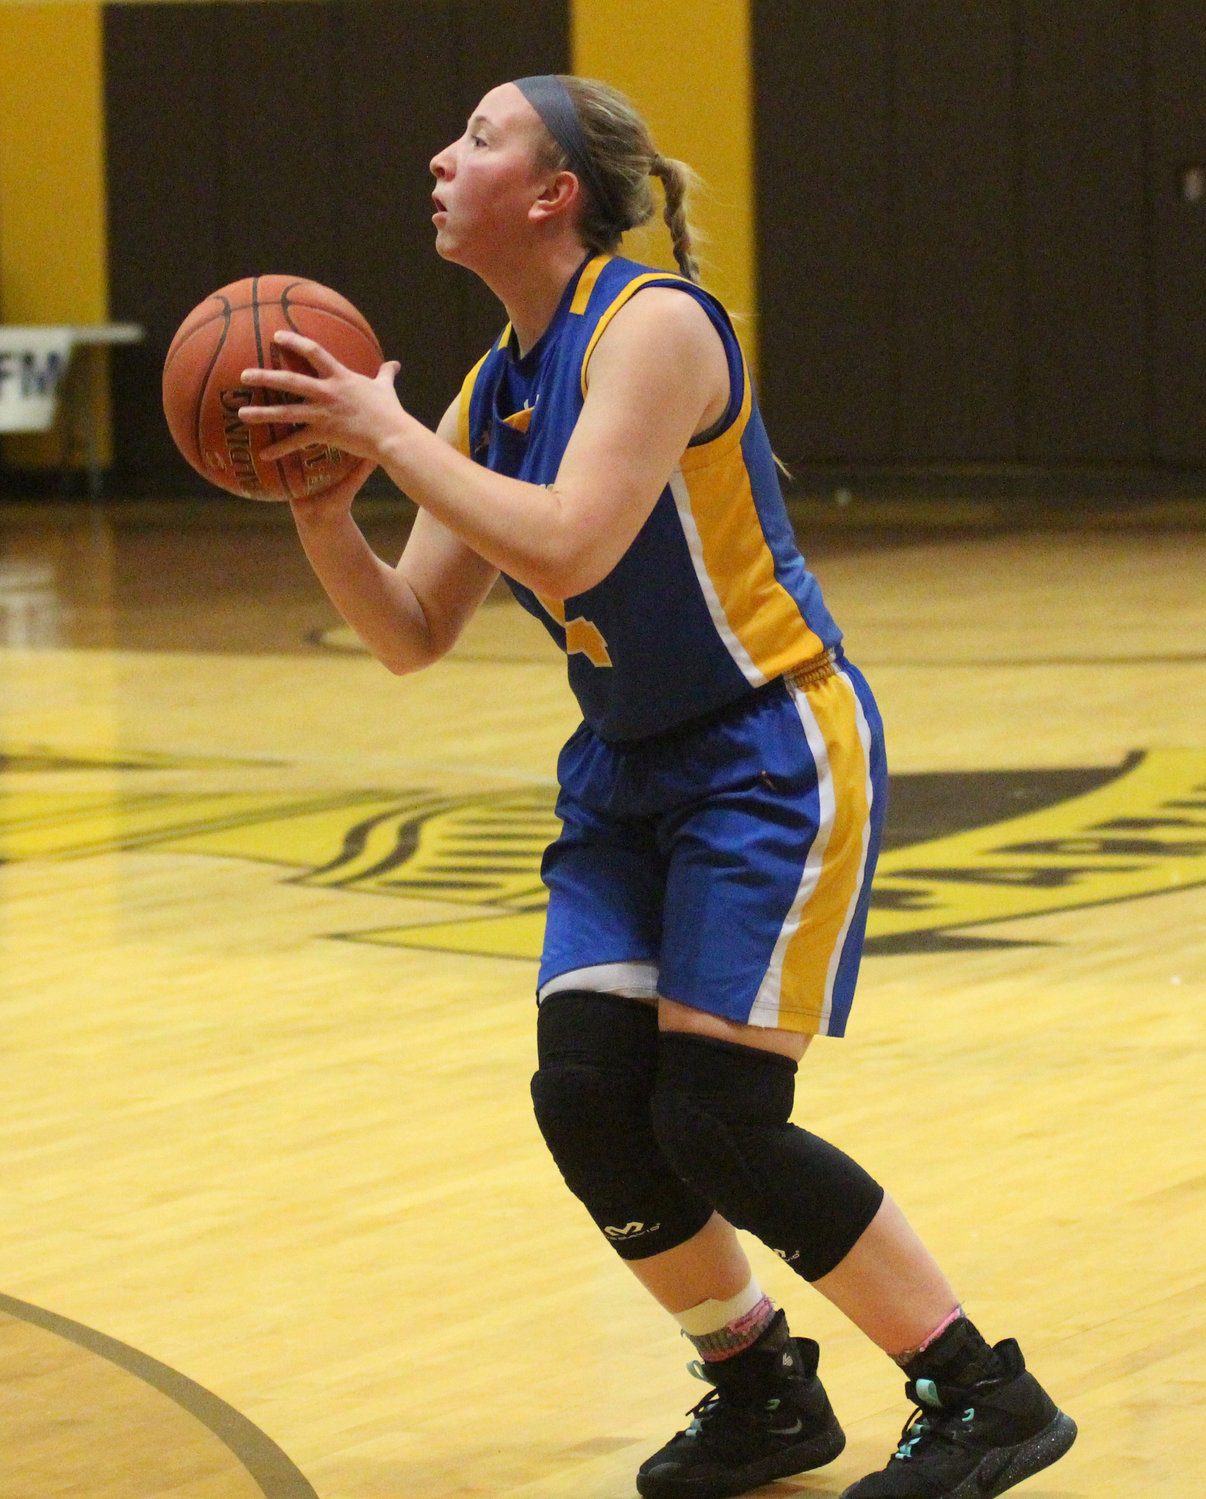 Kate Fitzpatrick shoots a 3-pointer Feb. 4 against Milton Hershey. She made eight in the game.